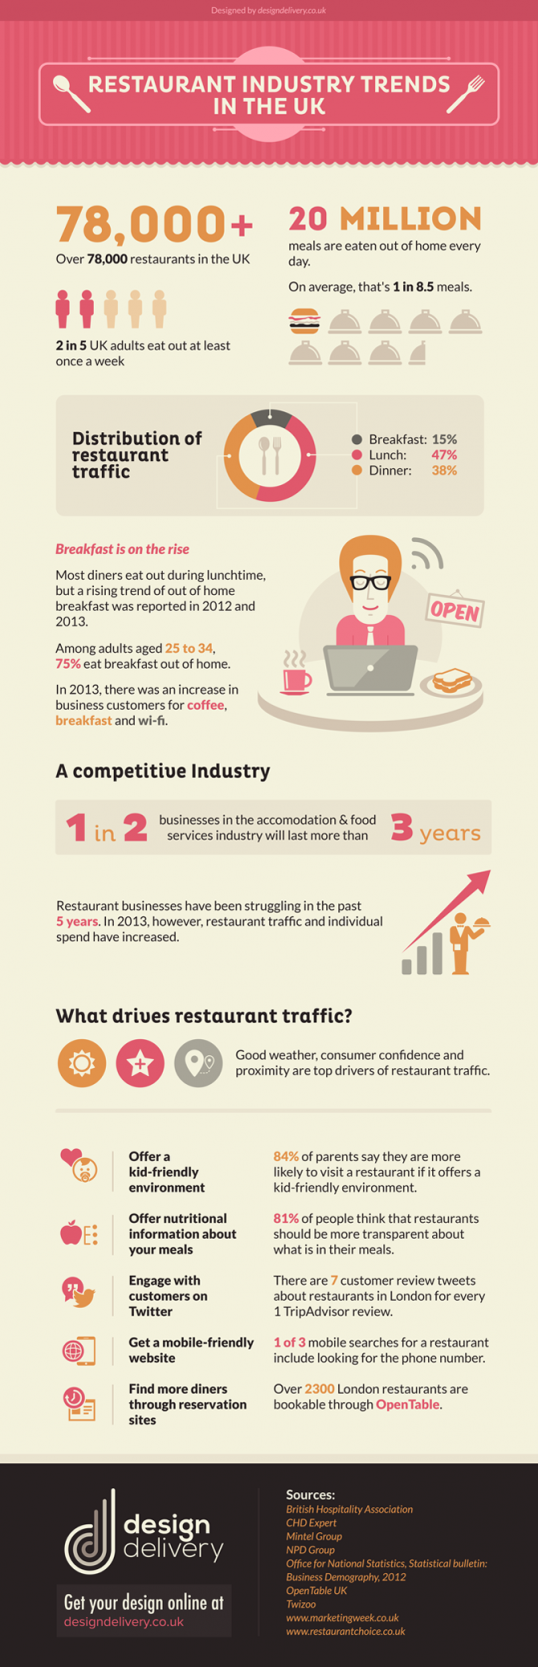 Restaurant Industry Trends In The UK